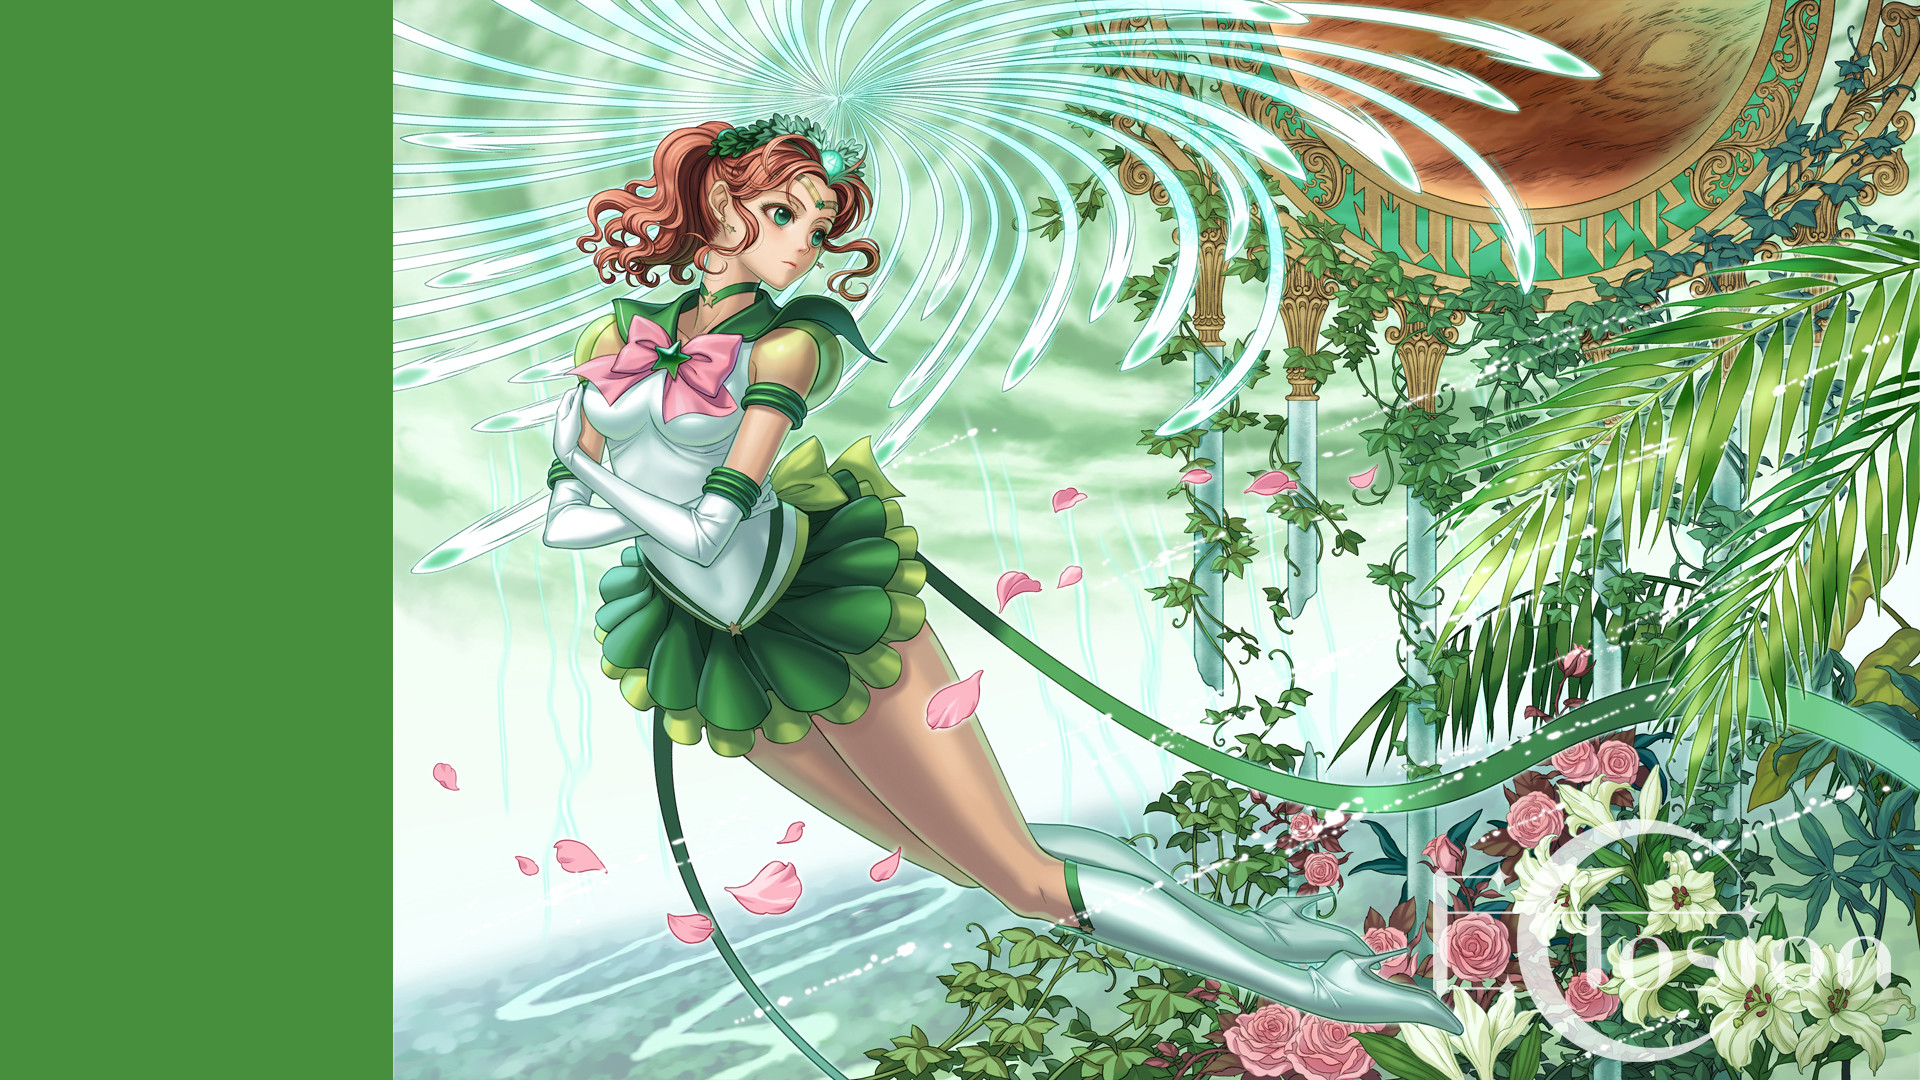 1920x1080 View Fullsize Sailor Jupiter Image